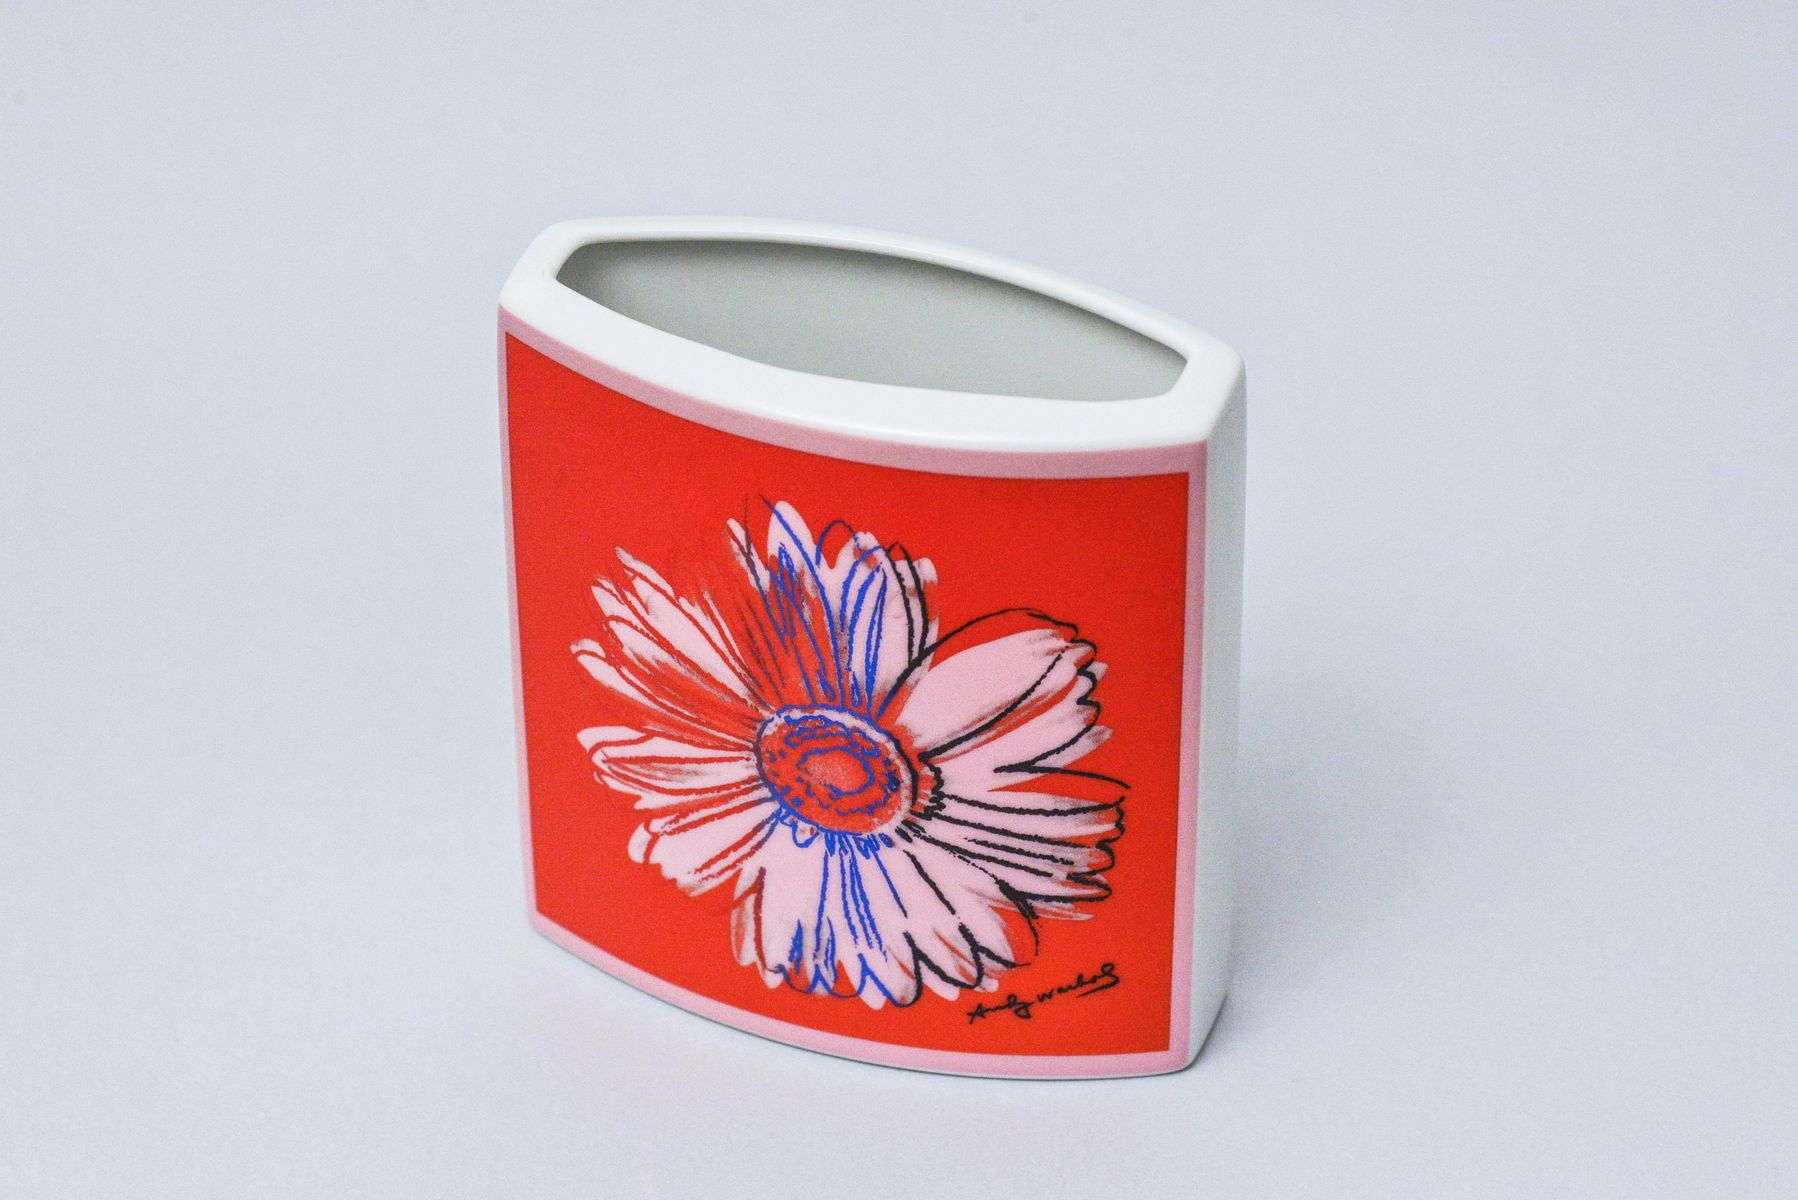 Vintage Daisy Vase By Andy Warhol For Rosenthal Studio Line For Sale